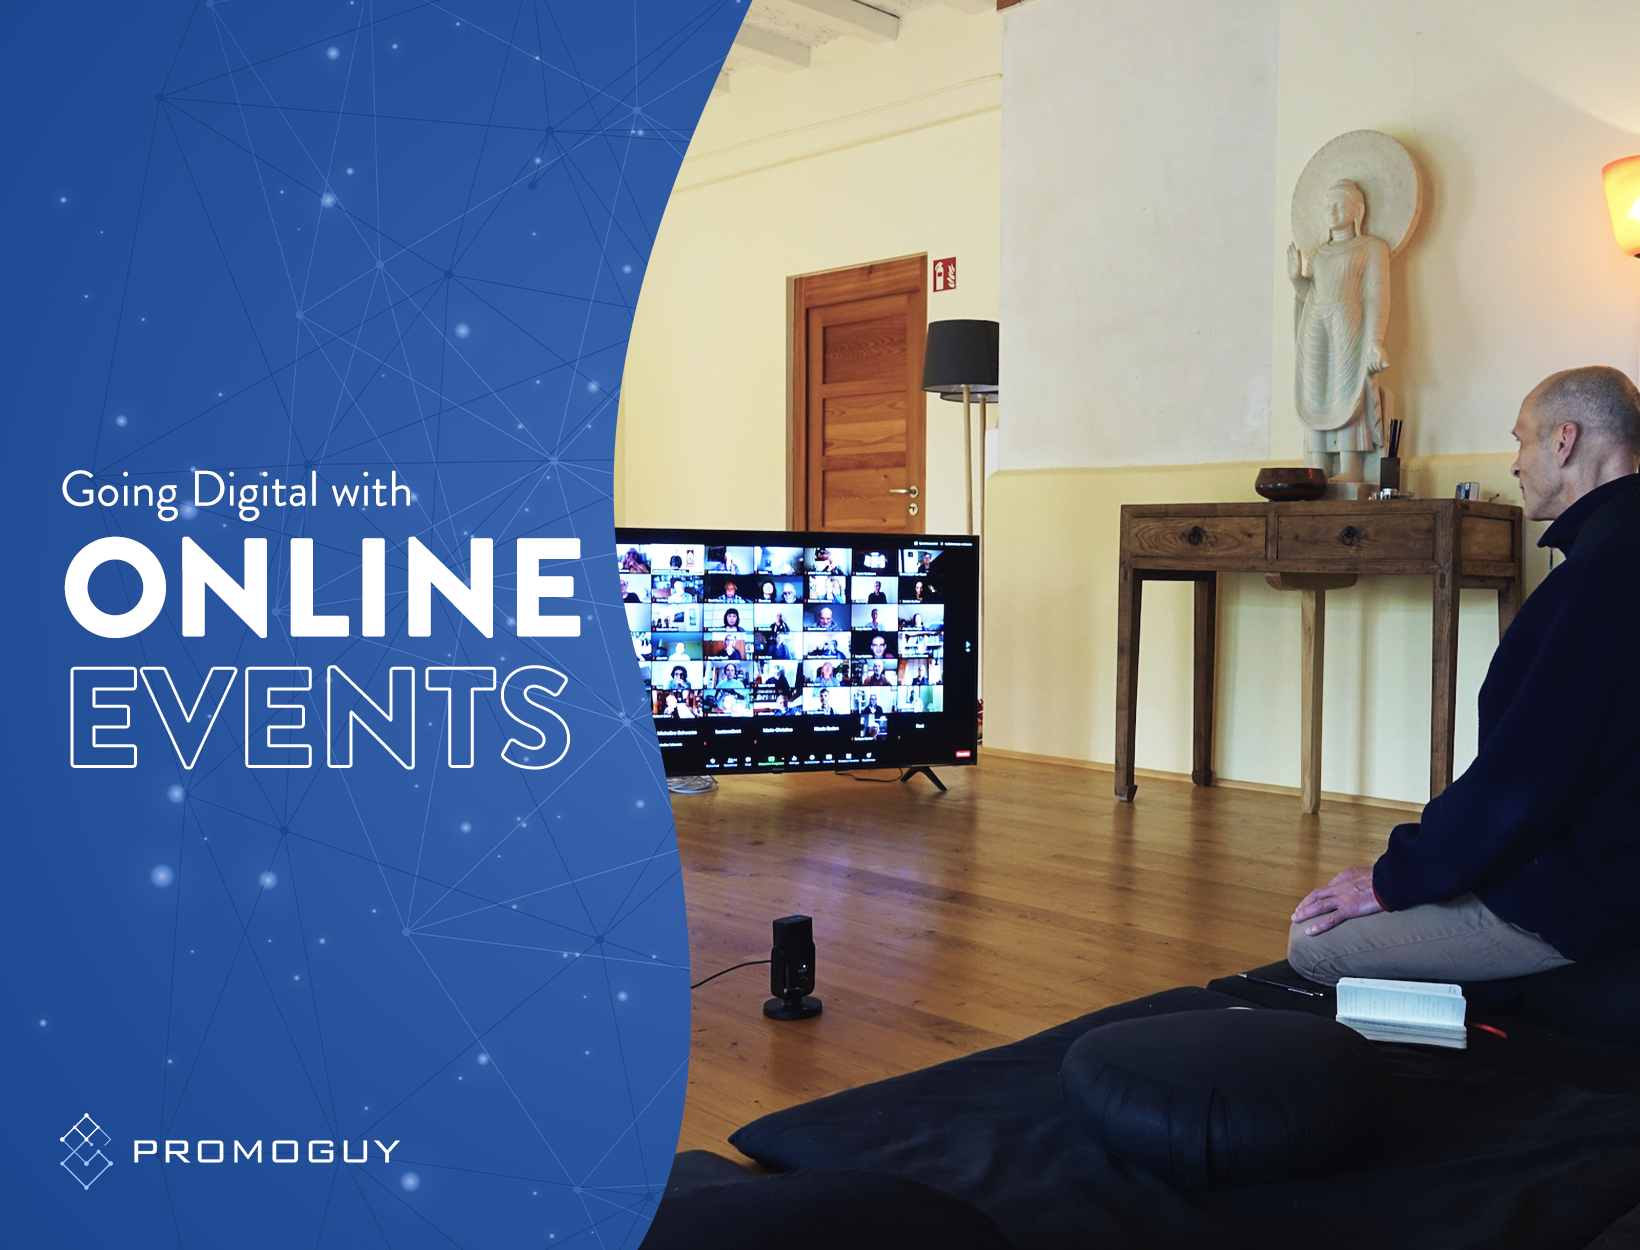 Going Digital with Online Events - First time ever - E-commerce